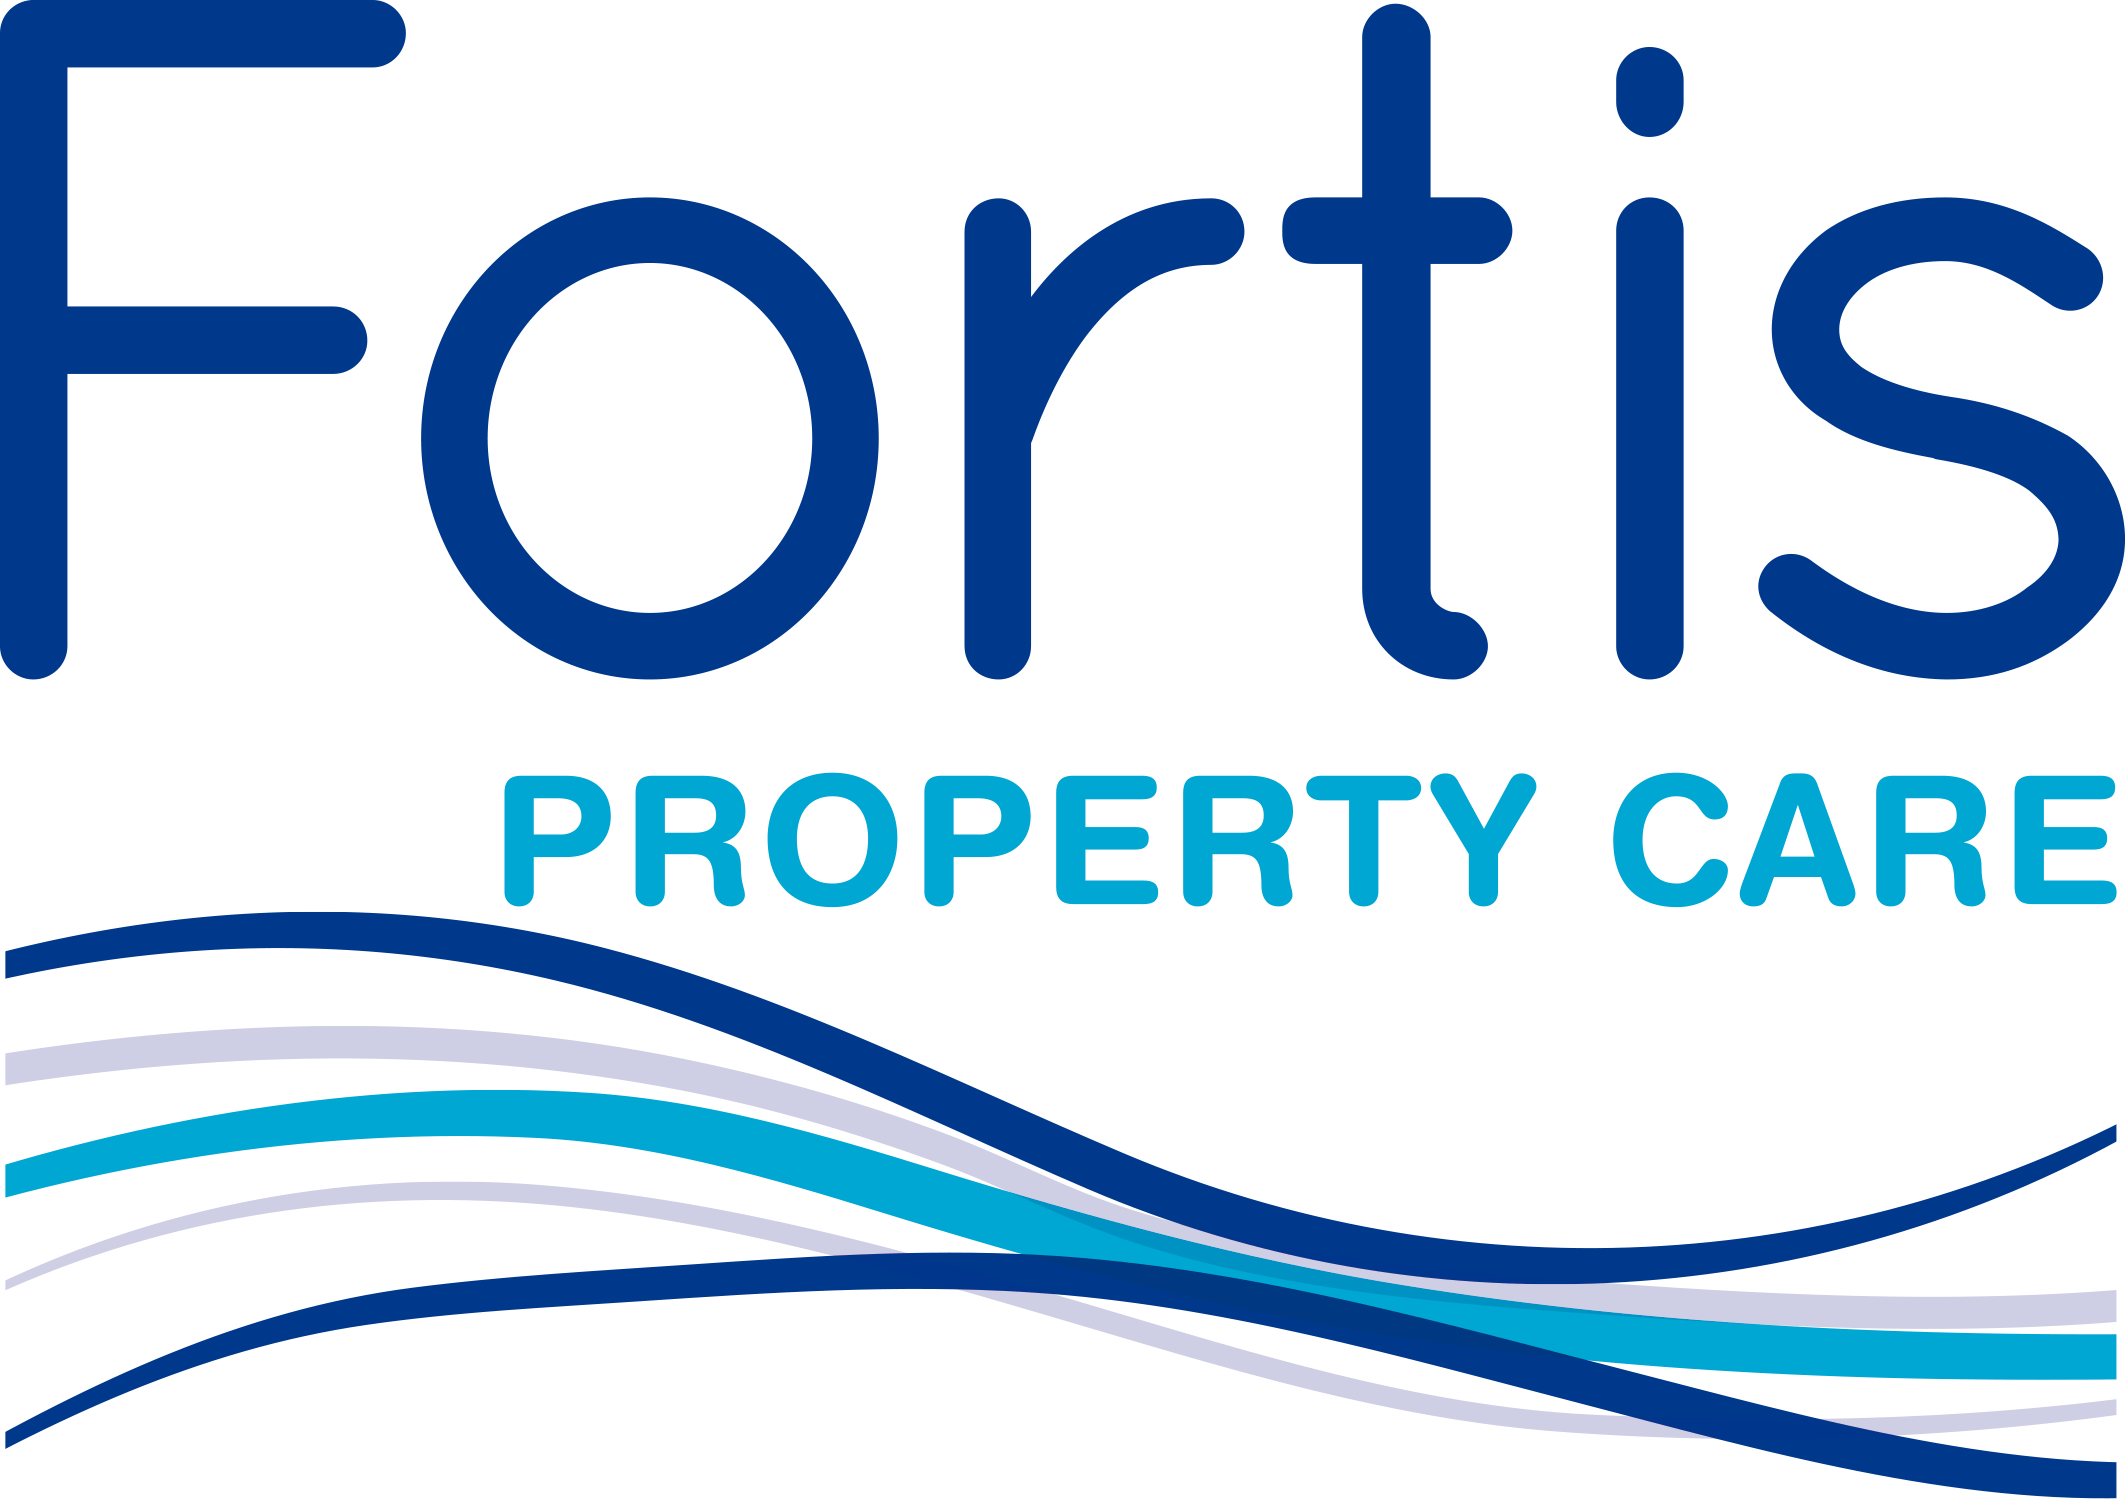 image-FORTIS-FCP-Logo.png